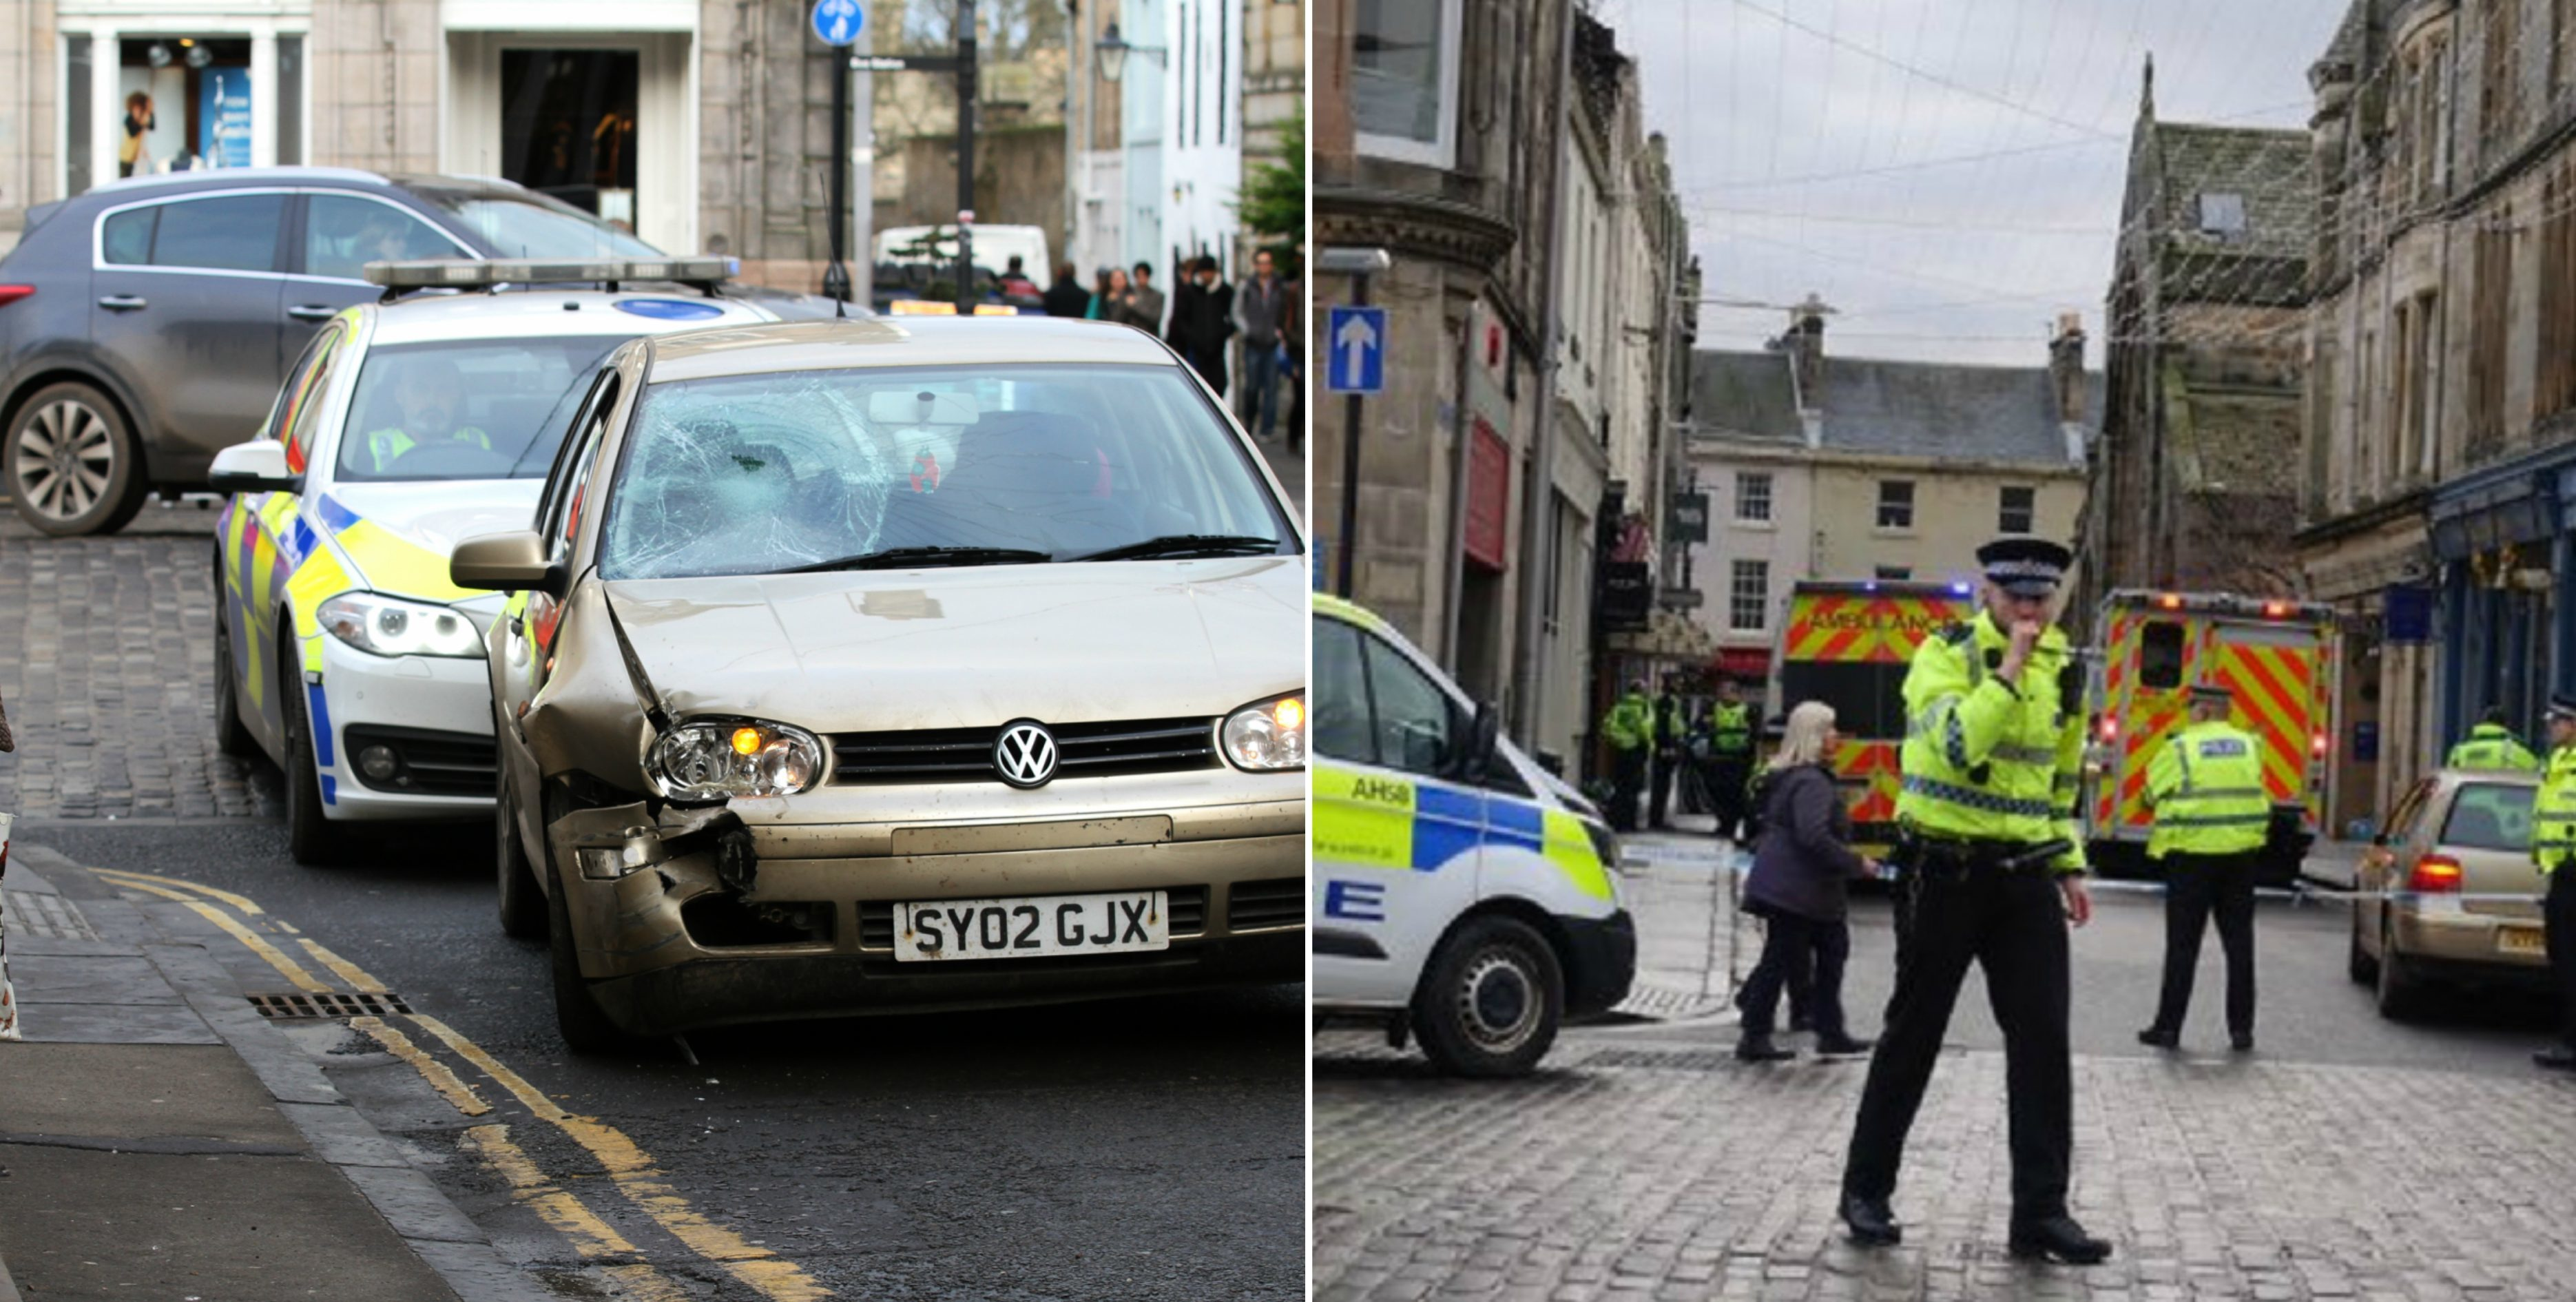 The scene following the incident in St Andrews.